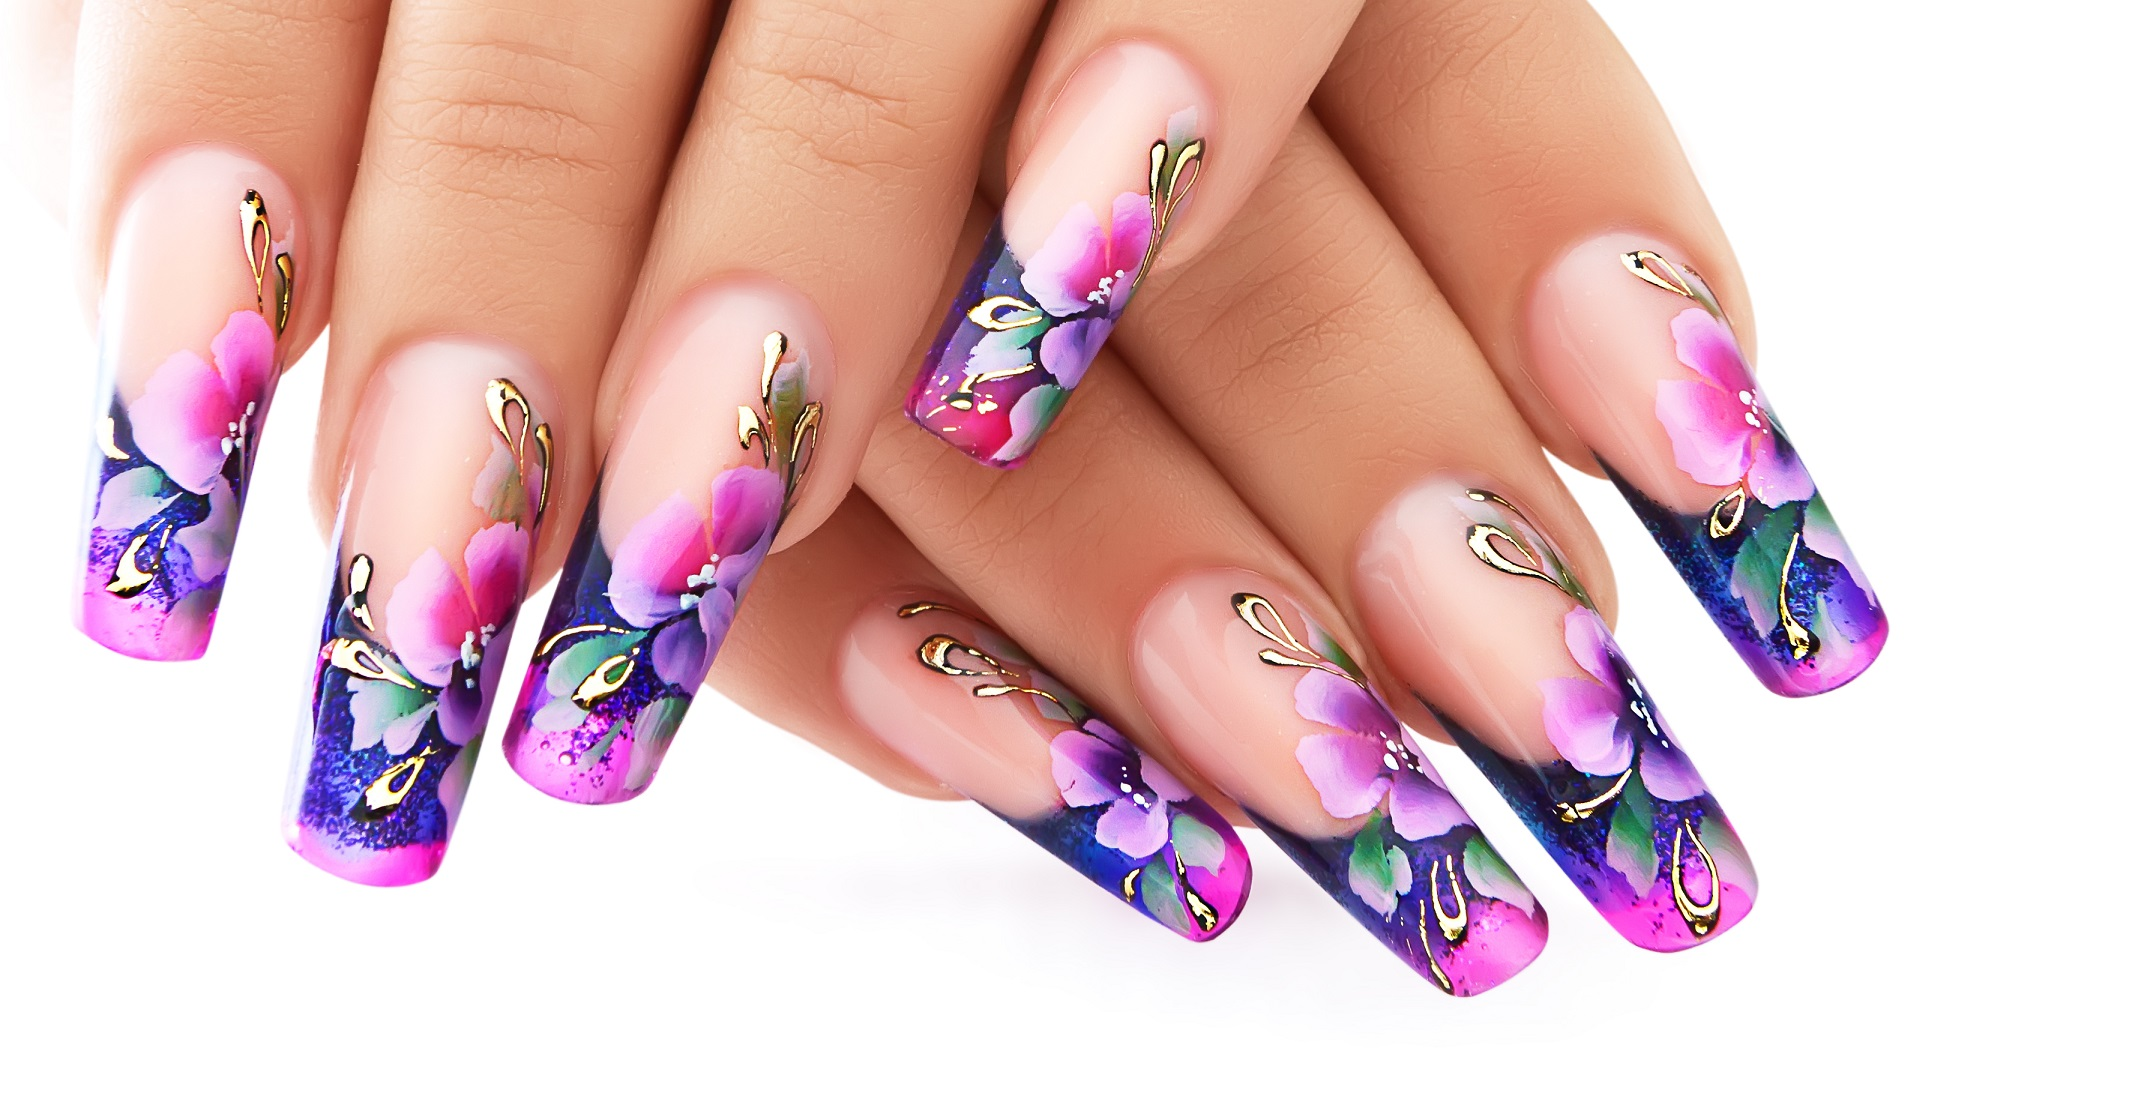 Luxury Nail Art Gallery Milwaukee Wi Crest - Nail Art Ideas ...